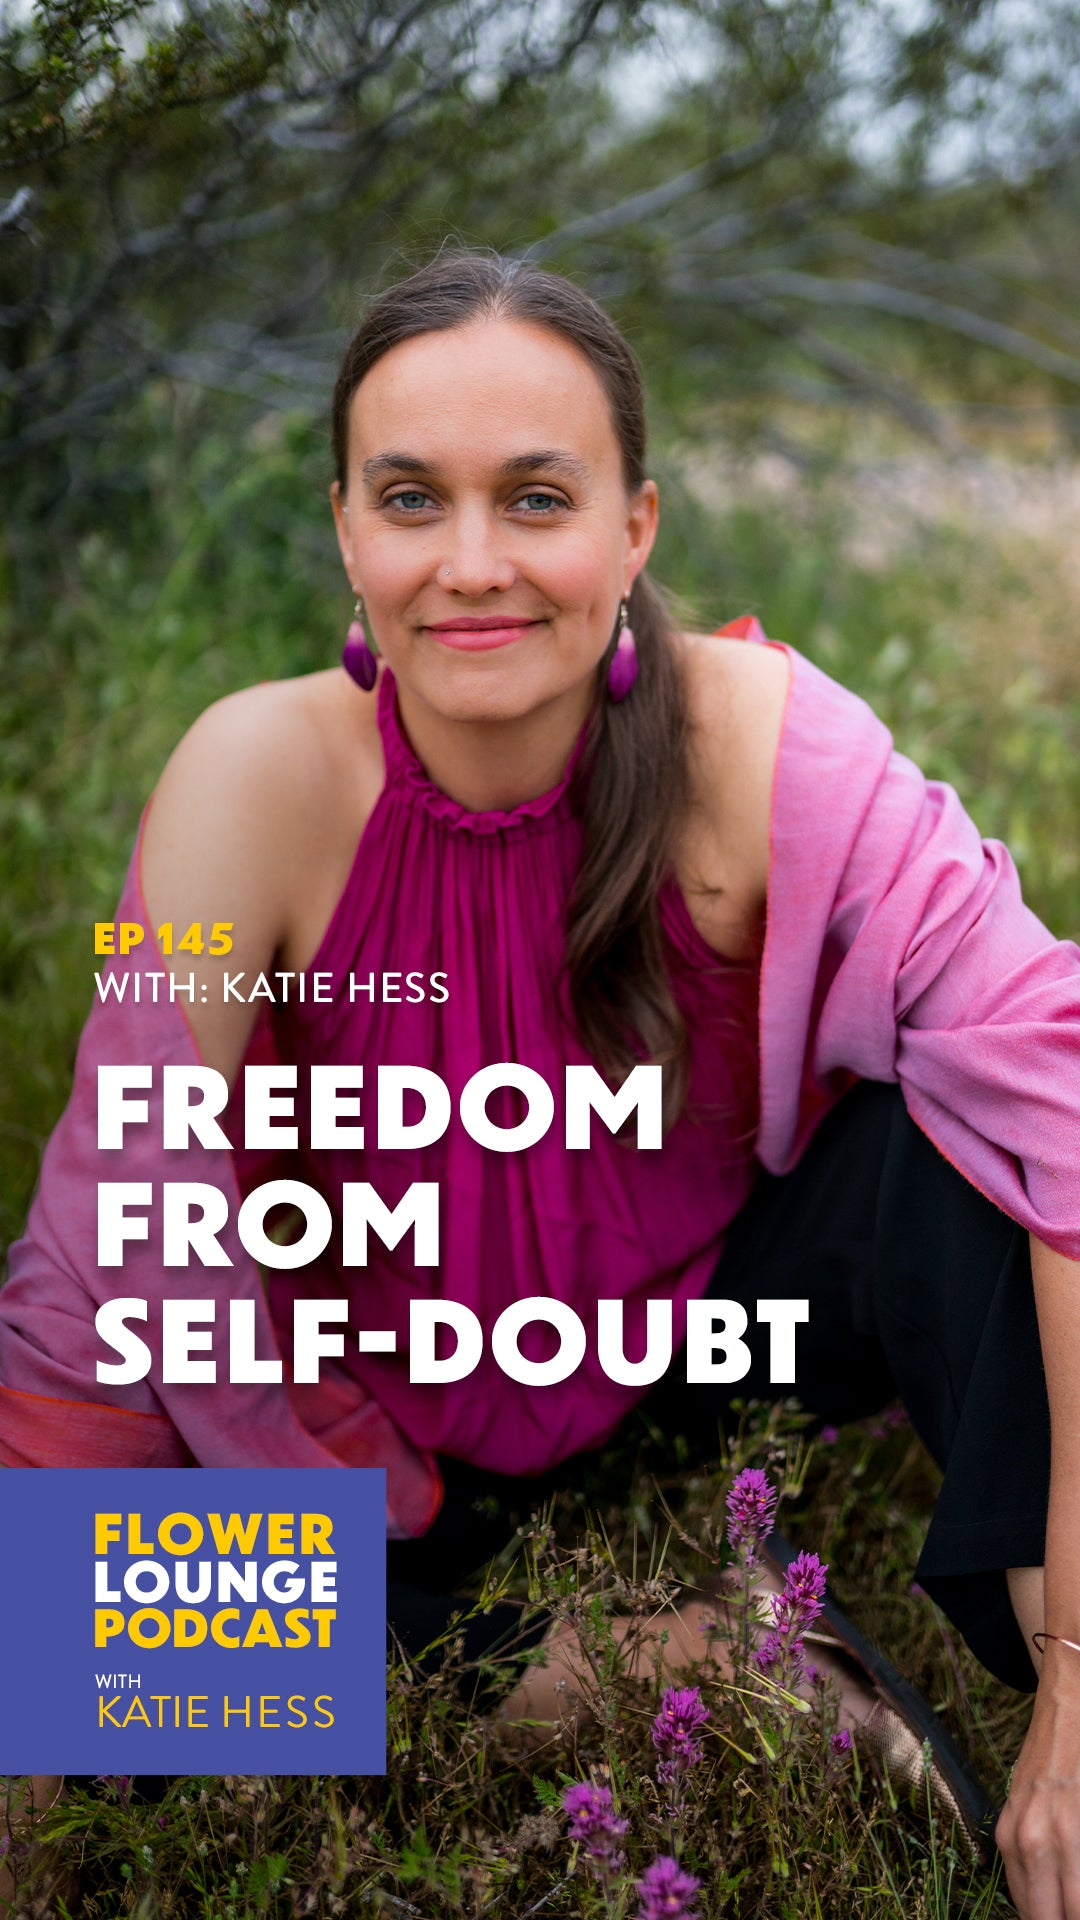 Freedom from Self Doubt with Katie Hess on the Flowerlounge Podcast